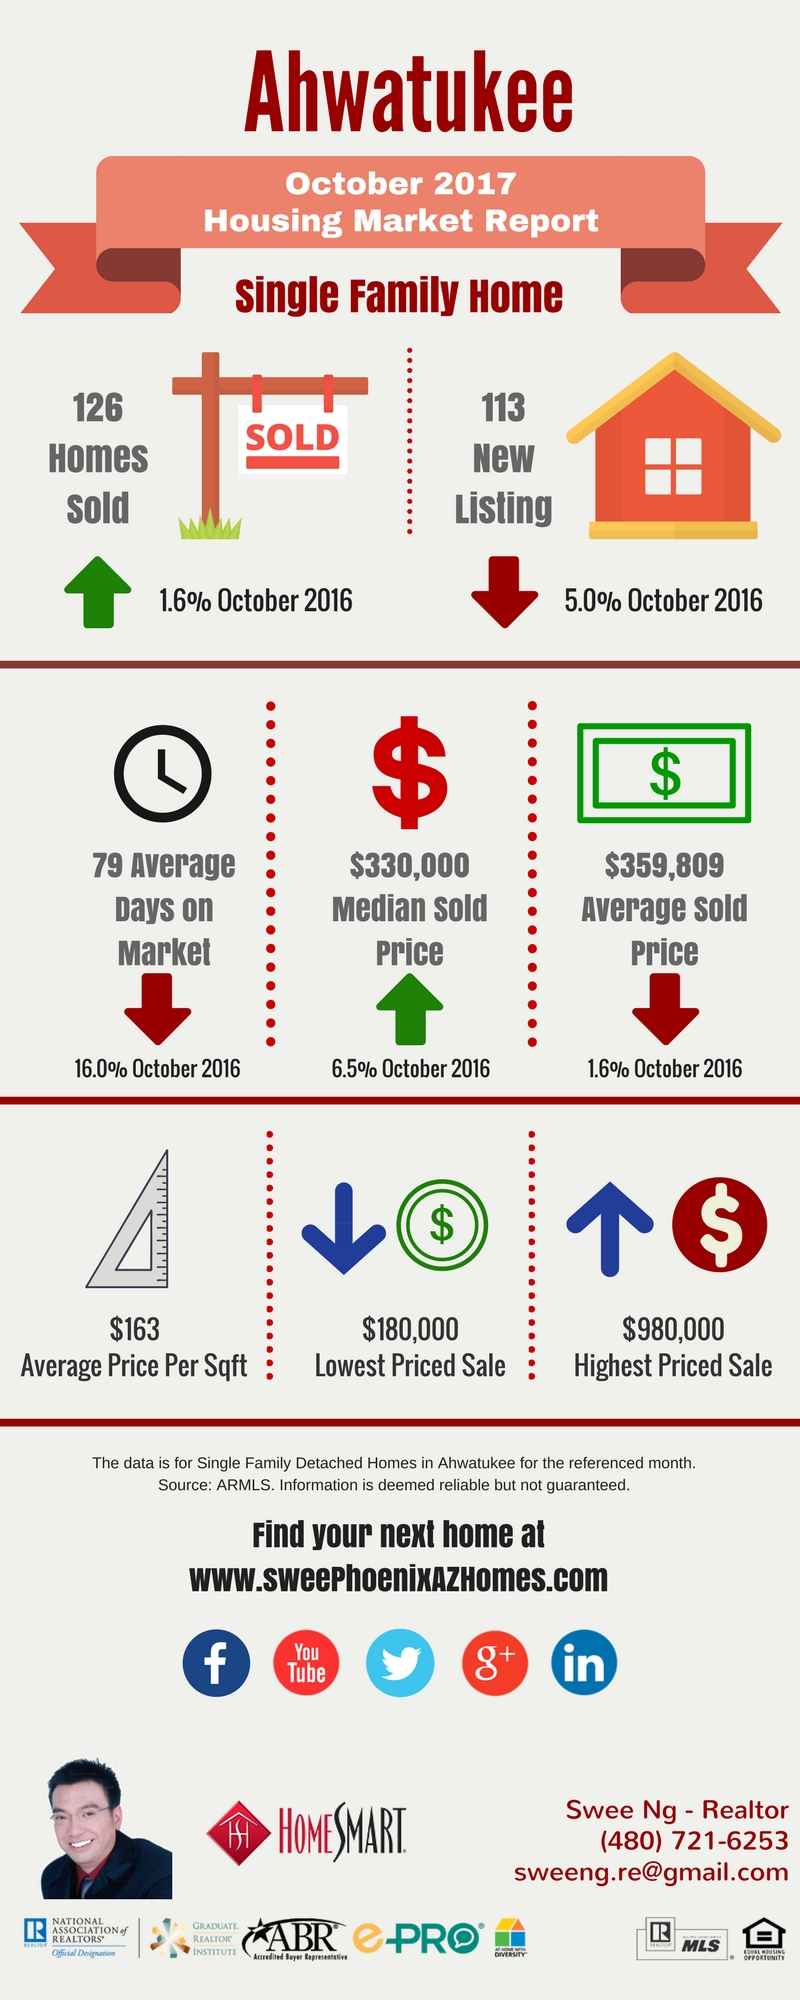 Ahwatukee Housing Market Trends Report October 2017, House Value, Real Estate and Statistic by Swee Ng